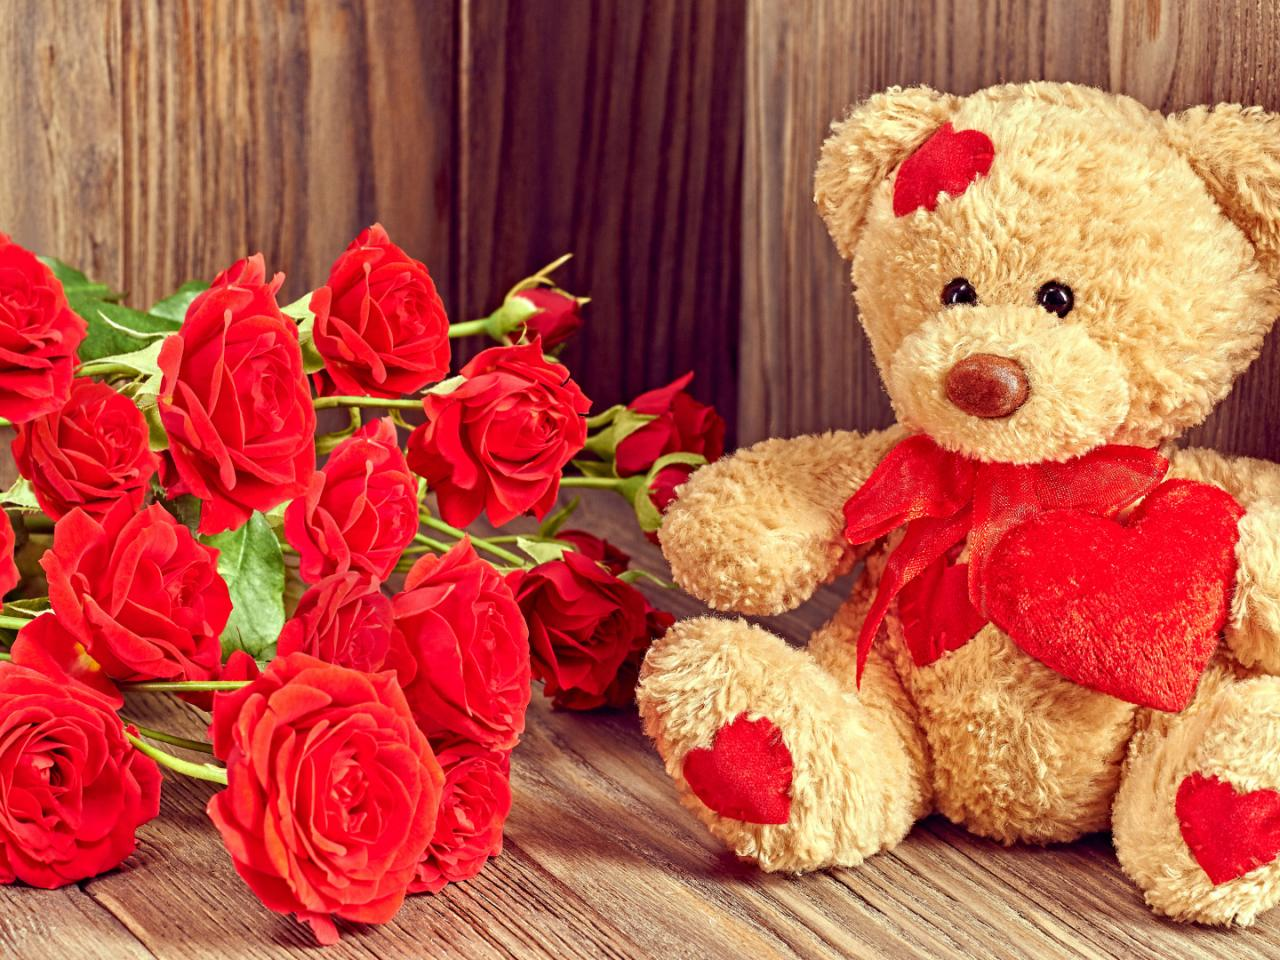 Cute and romantic wallpaper with teddy bear images - Cute teddy bear pics hd download ...